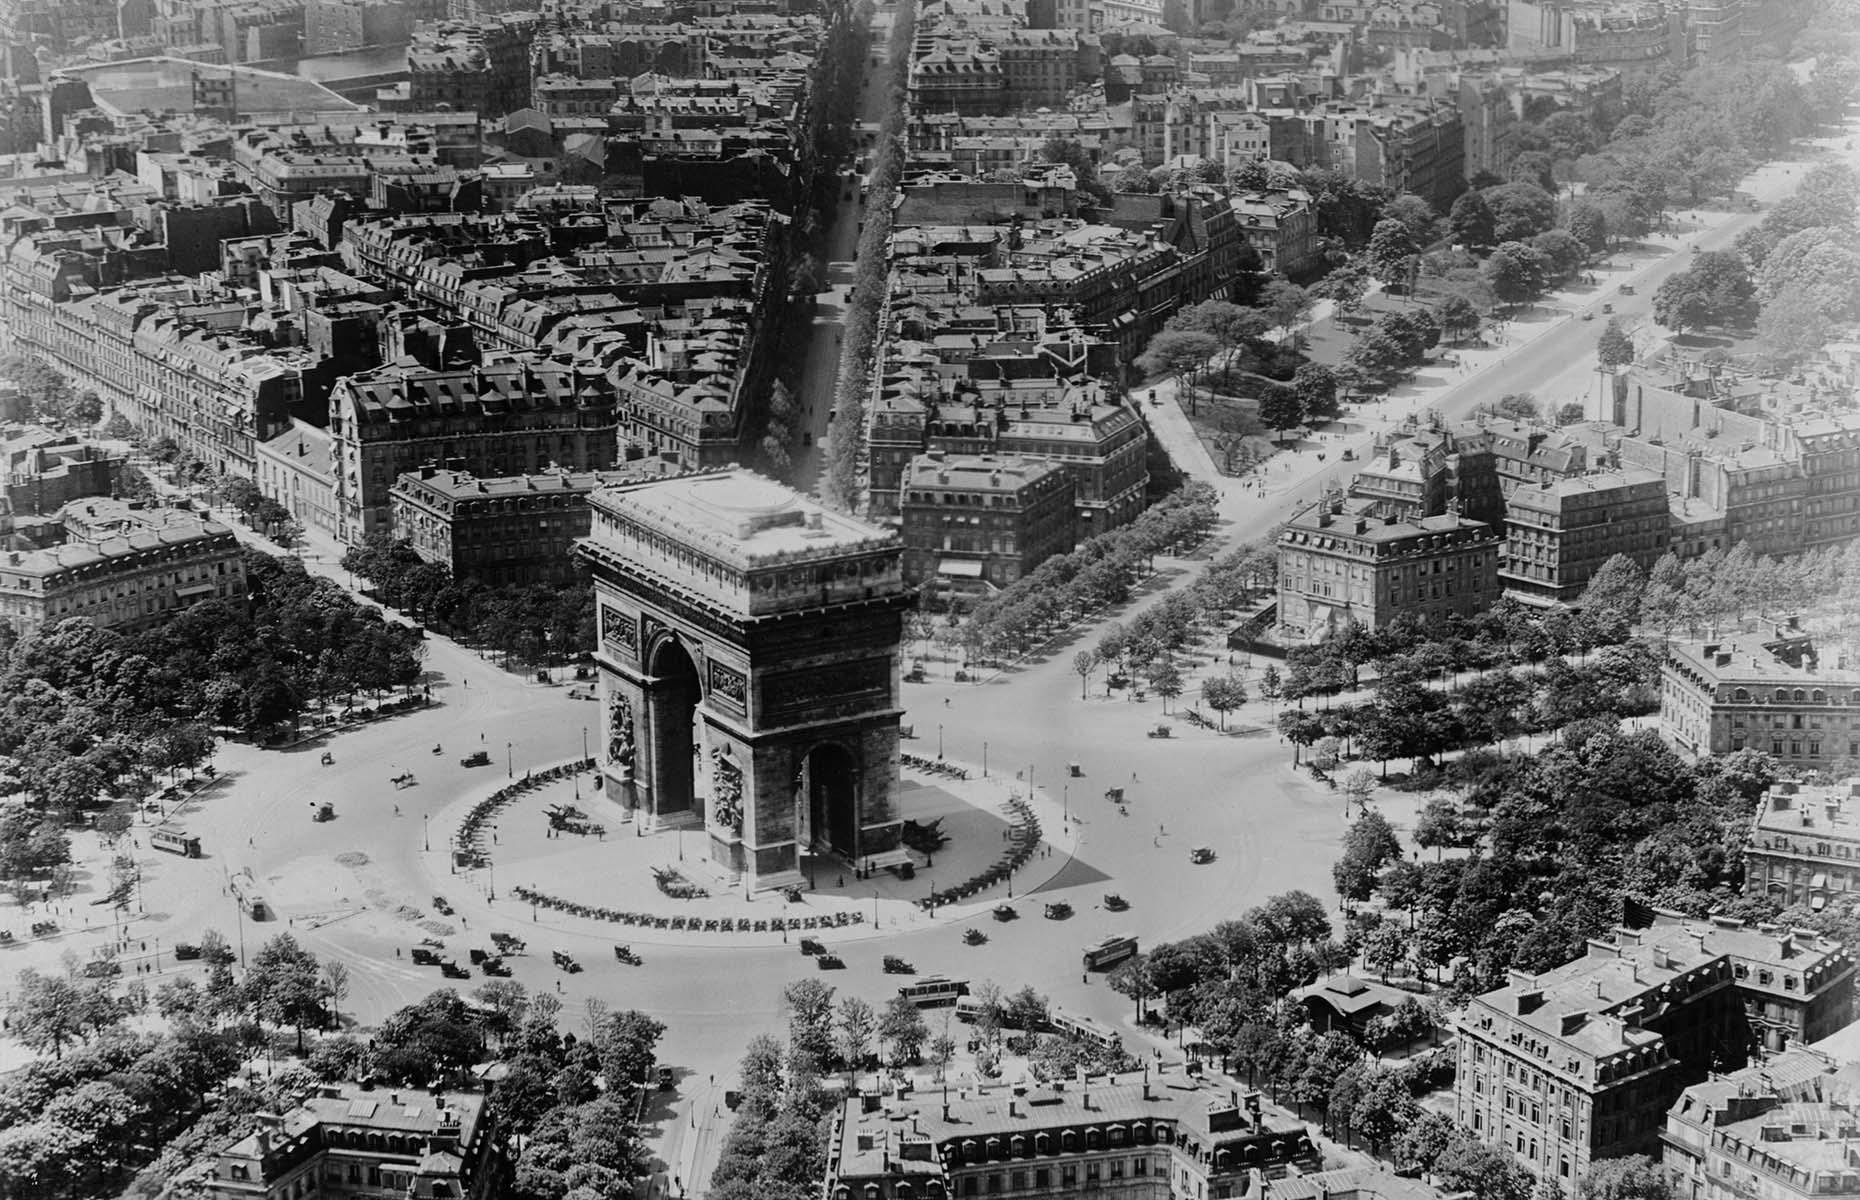 Slide 24 of 27: Arc de Triomphe, officially called Arc de Triomphe de l'Étoile, is one of the French capital's most famous sights, commemorating the French soldiers who fought and died in the French Revolutionary and Napoleonic Wars. Snapped in the first half of the 1900s, around 100 years after the landmark was finished, this aerial photo also gives a good glimpse of what the city used to look like, including the tree-lined avenues that surround it.